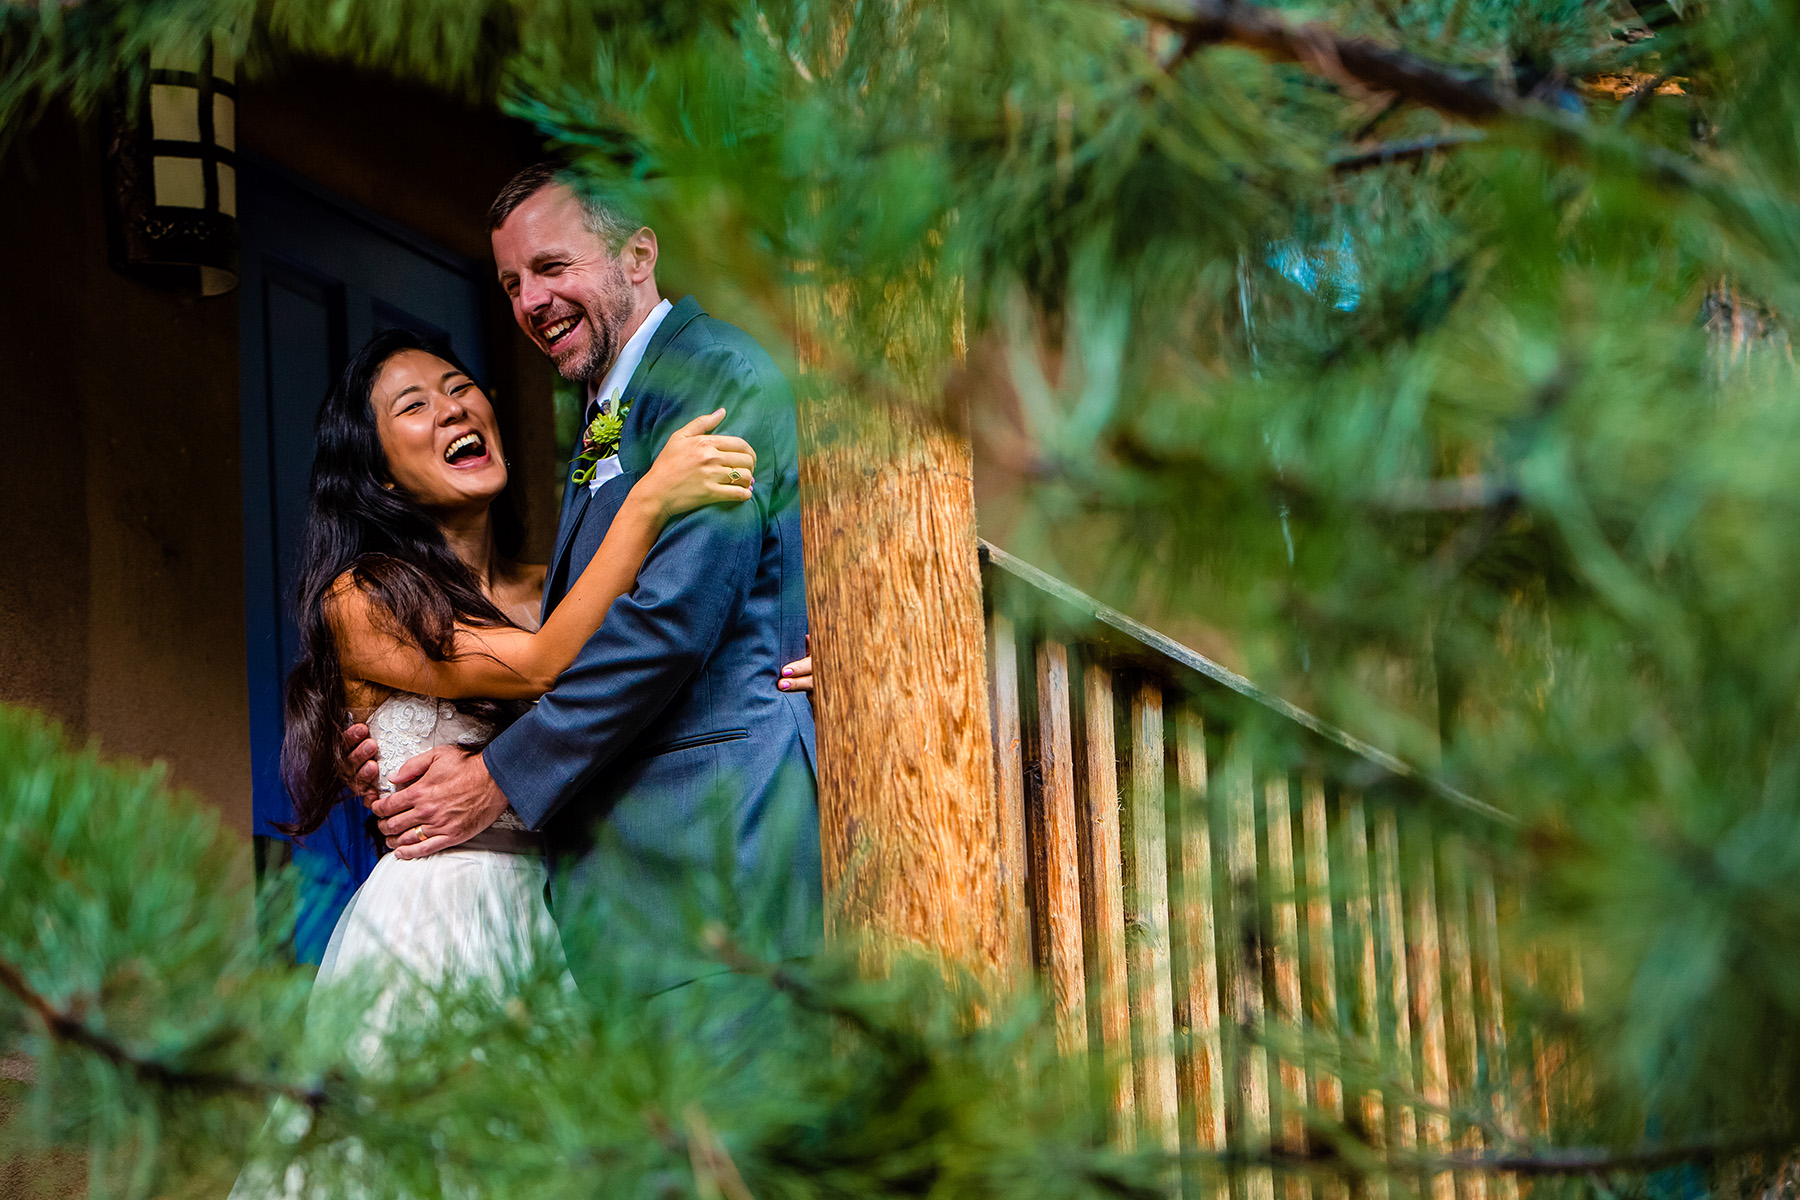 Lee-wedding-photography-La-Posada-Santa-Fe-New-Mexico-1083